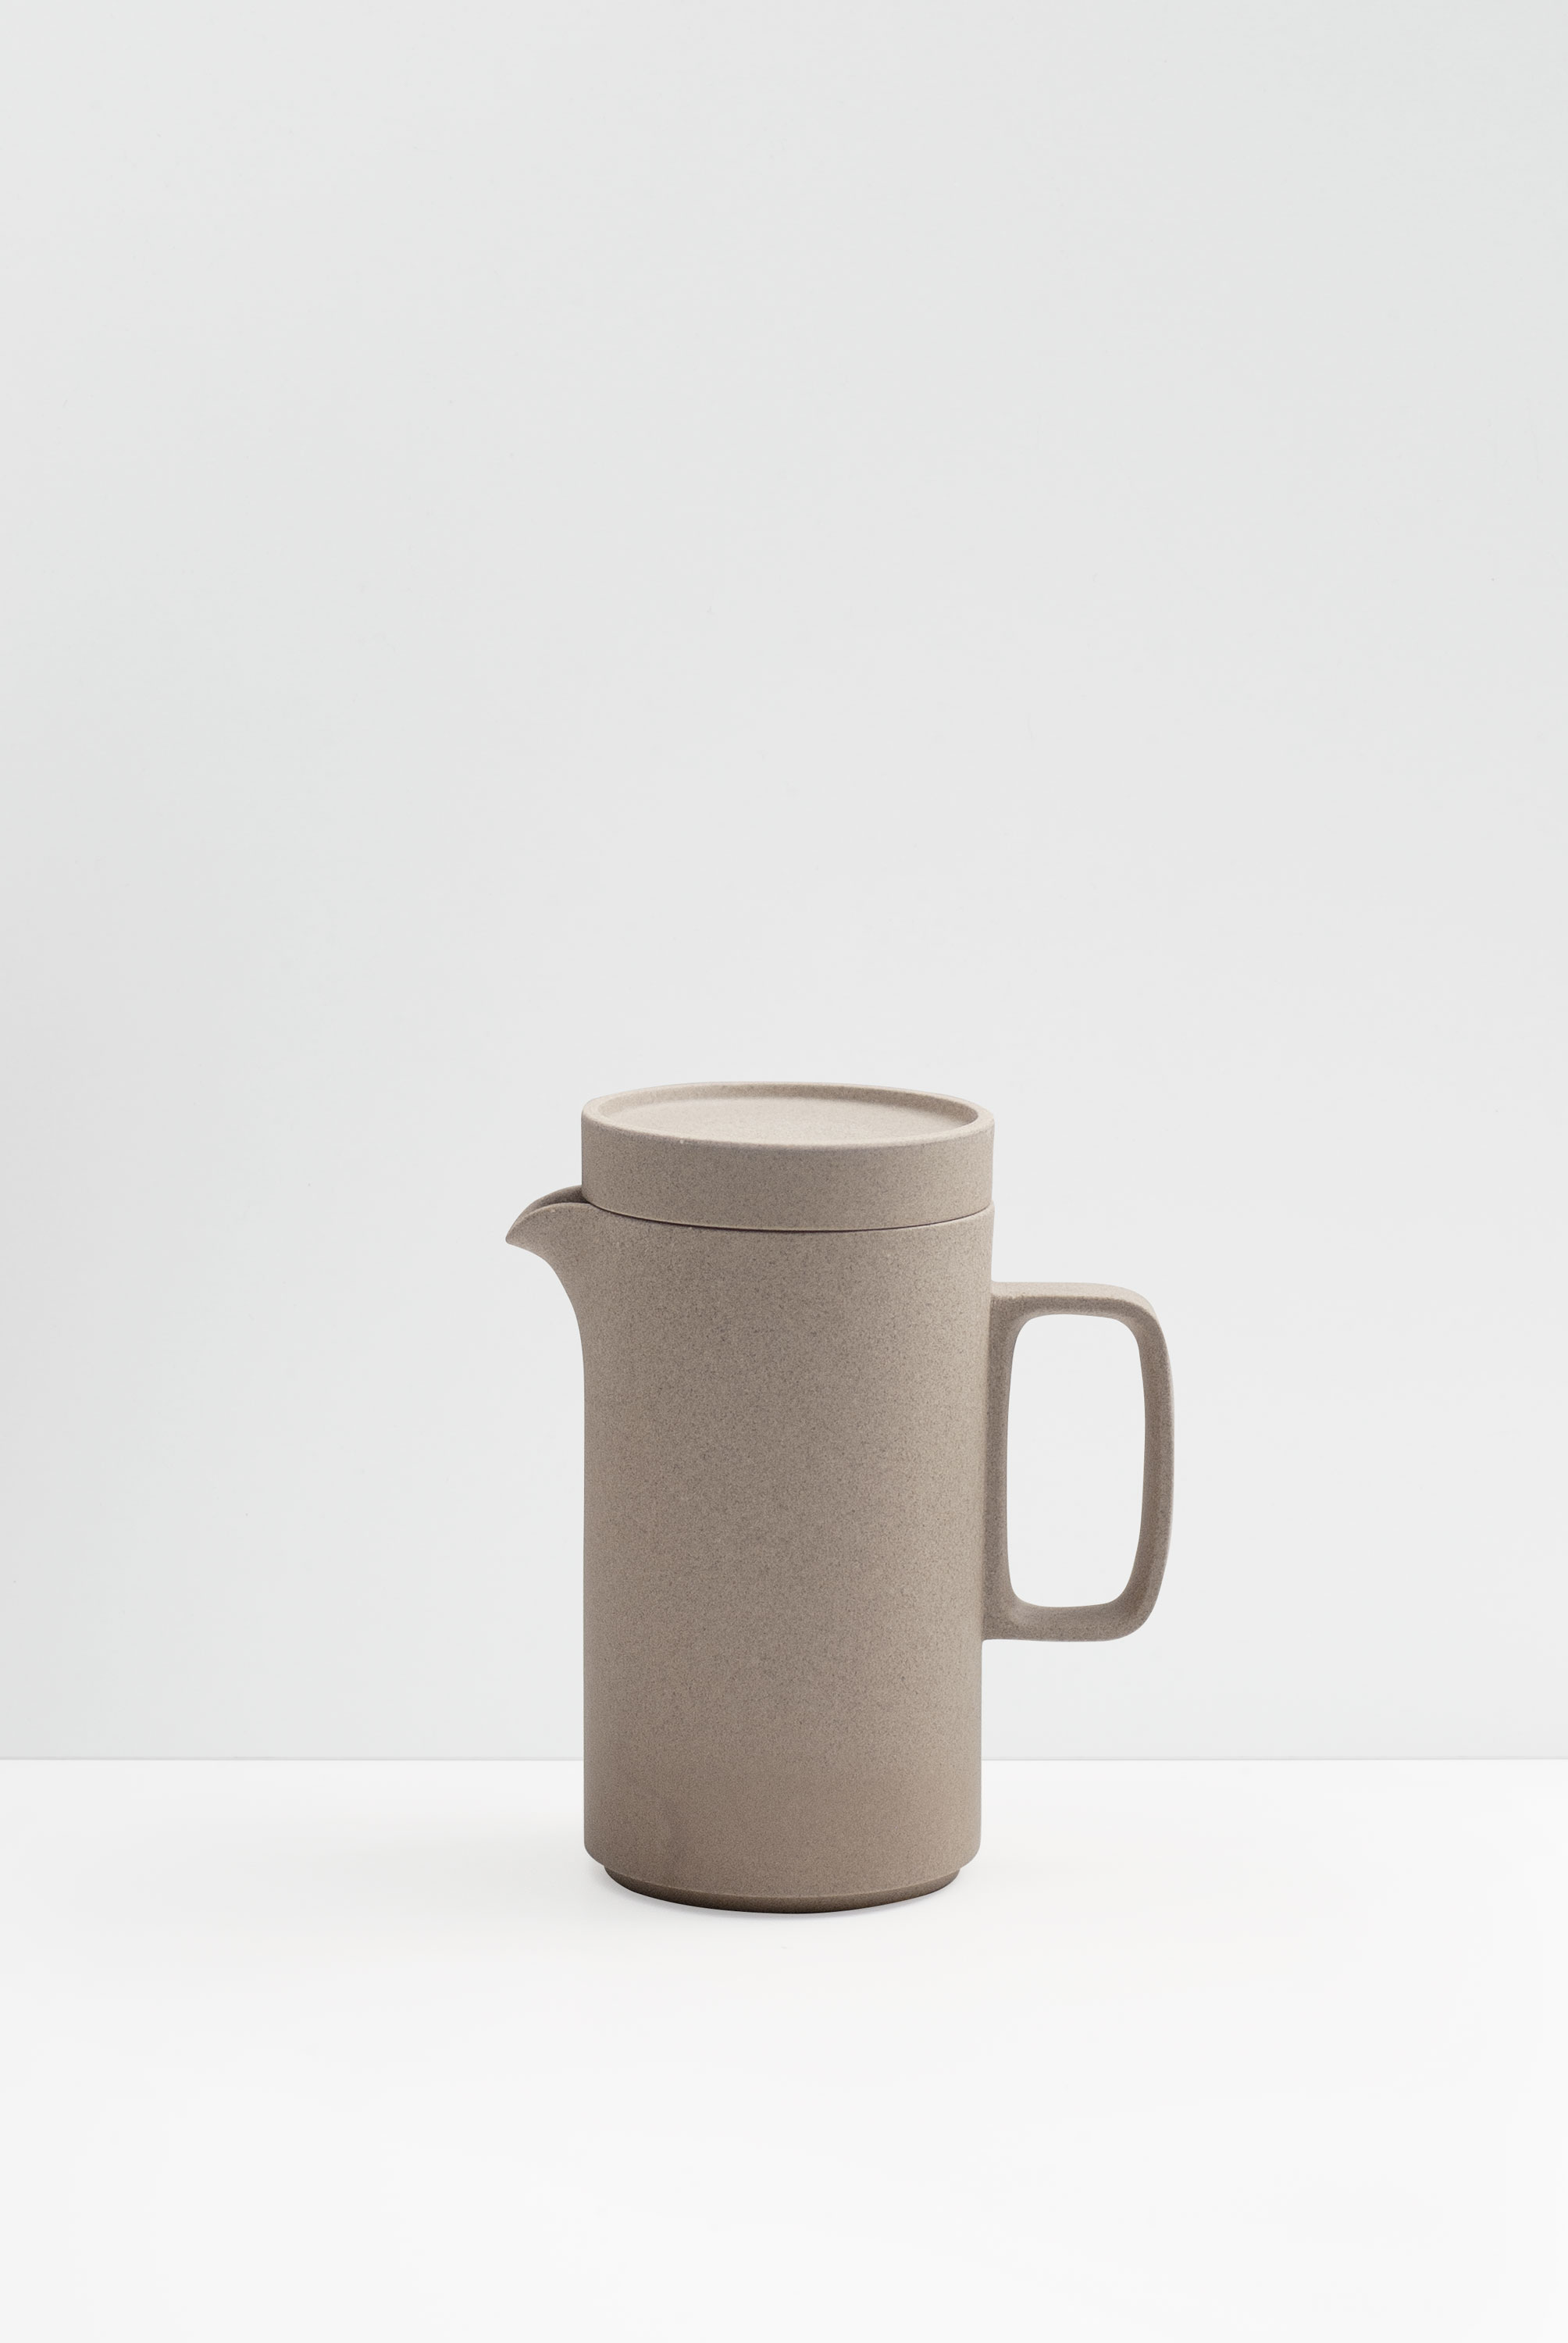 Hasami Porcelain tea pot in natural matte